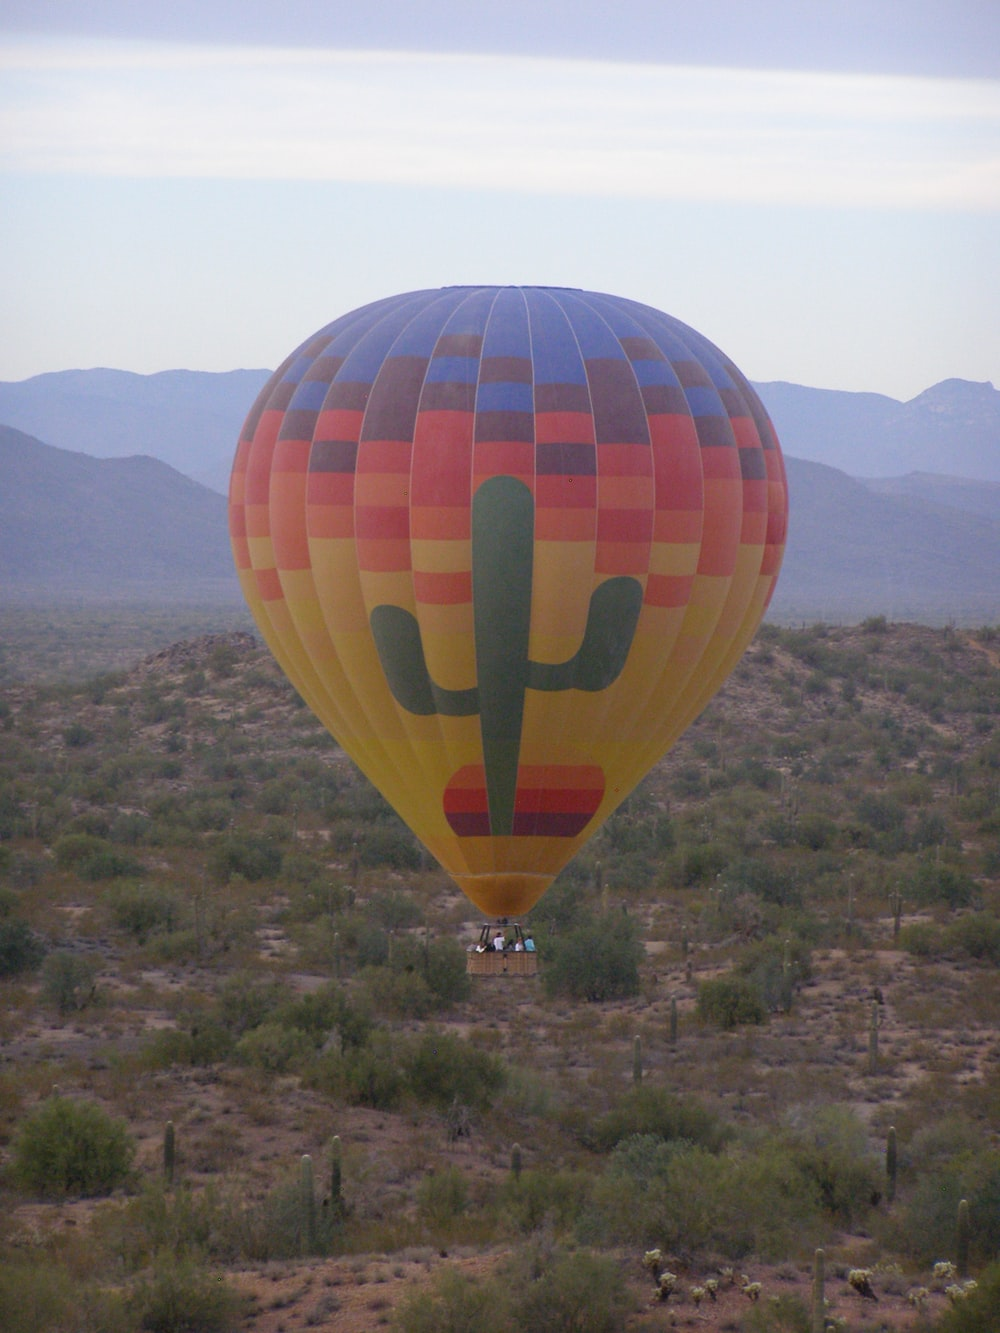 people riding hot air balloon during daytime